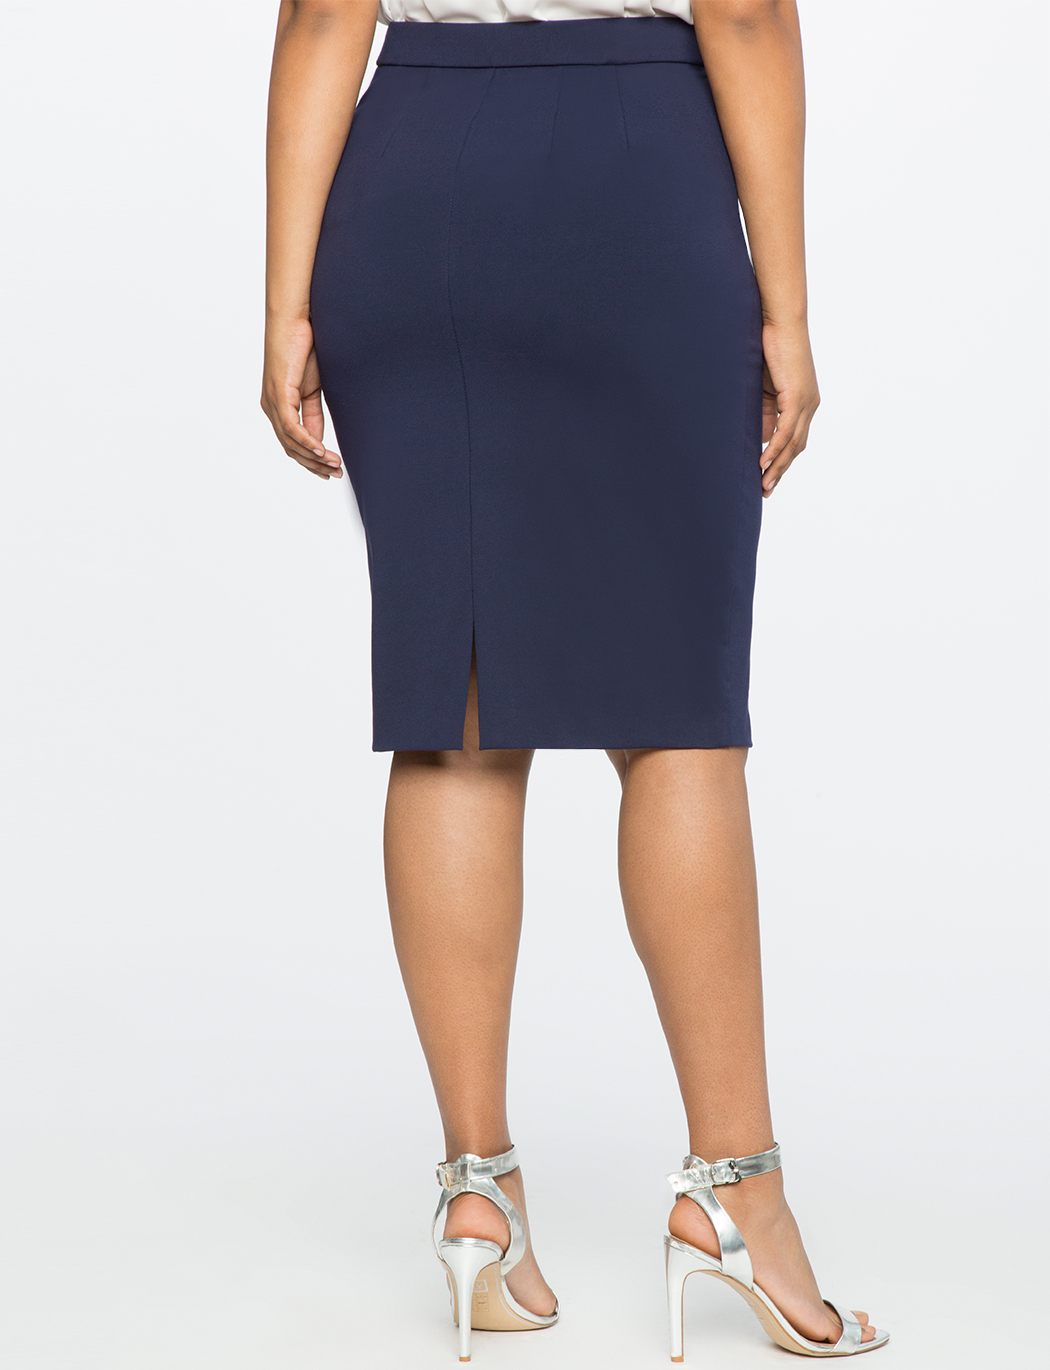 9-to-5 Stretch Skirt